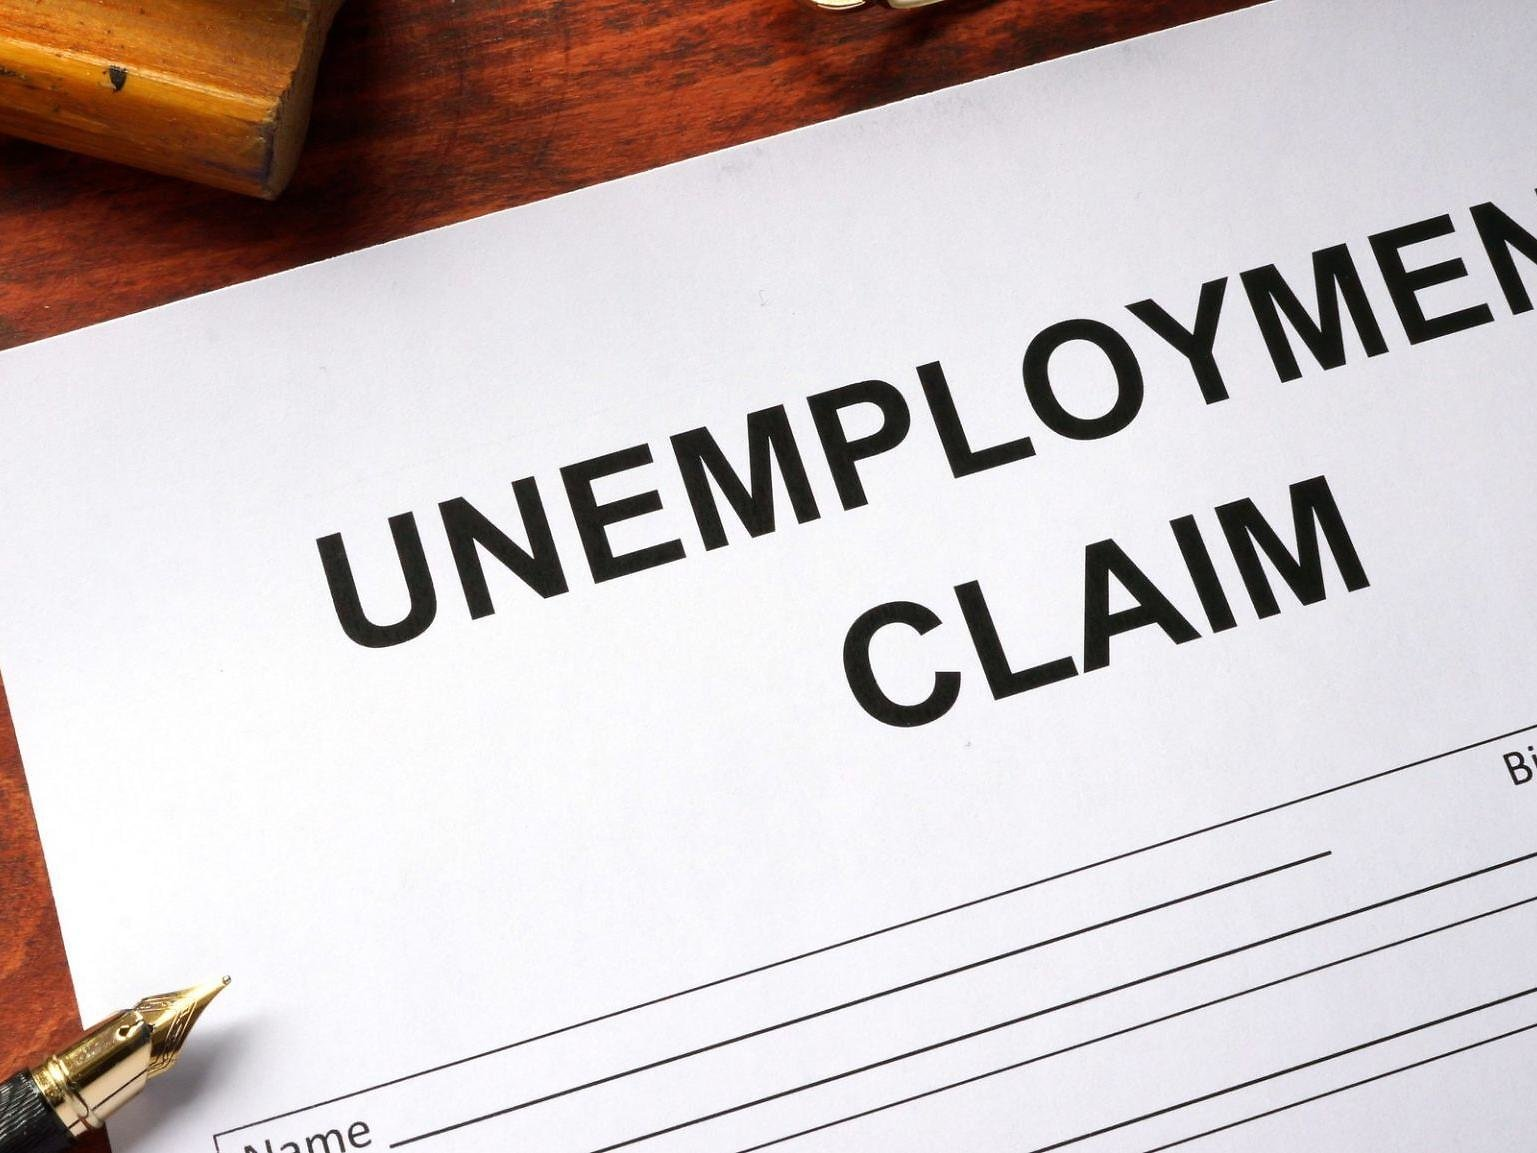 US Jobless Claims Up to 744,000 As Pandemic Still Forces Layoffs